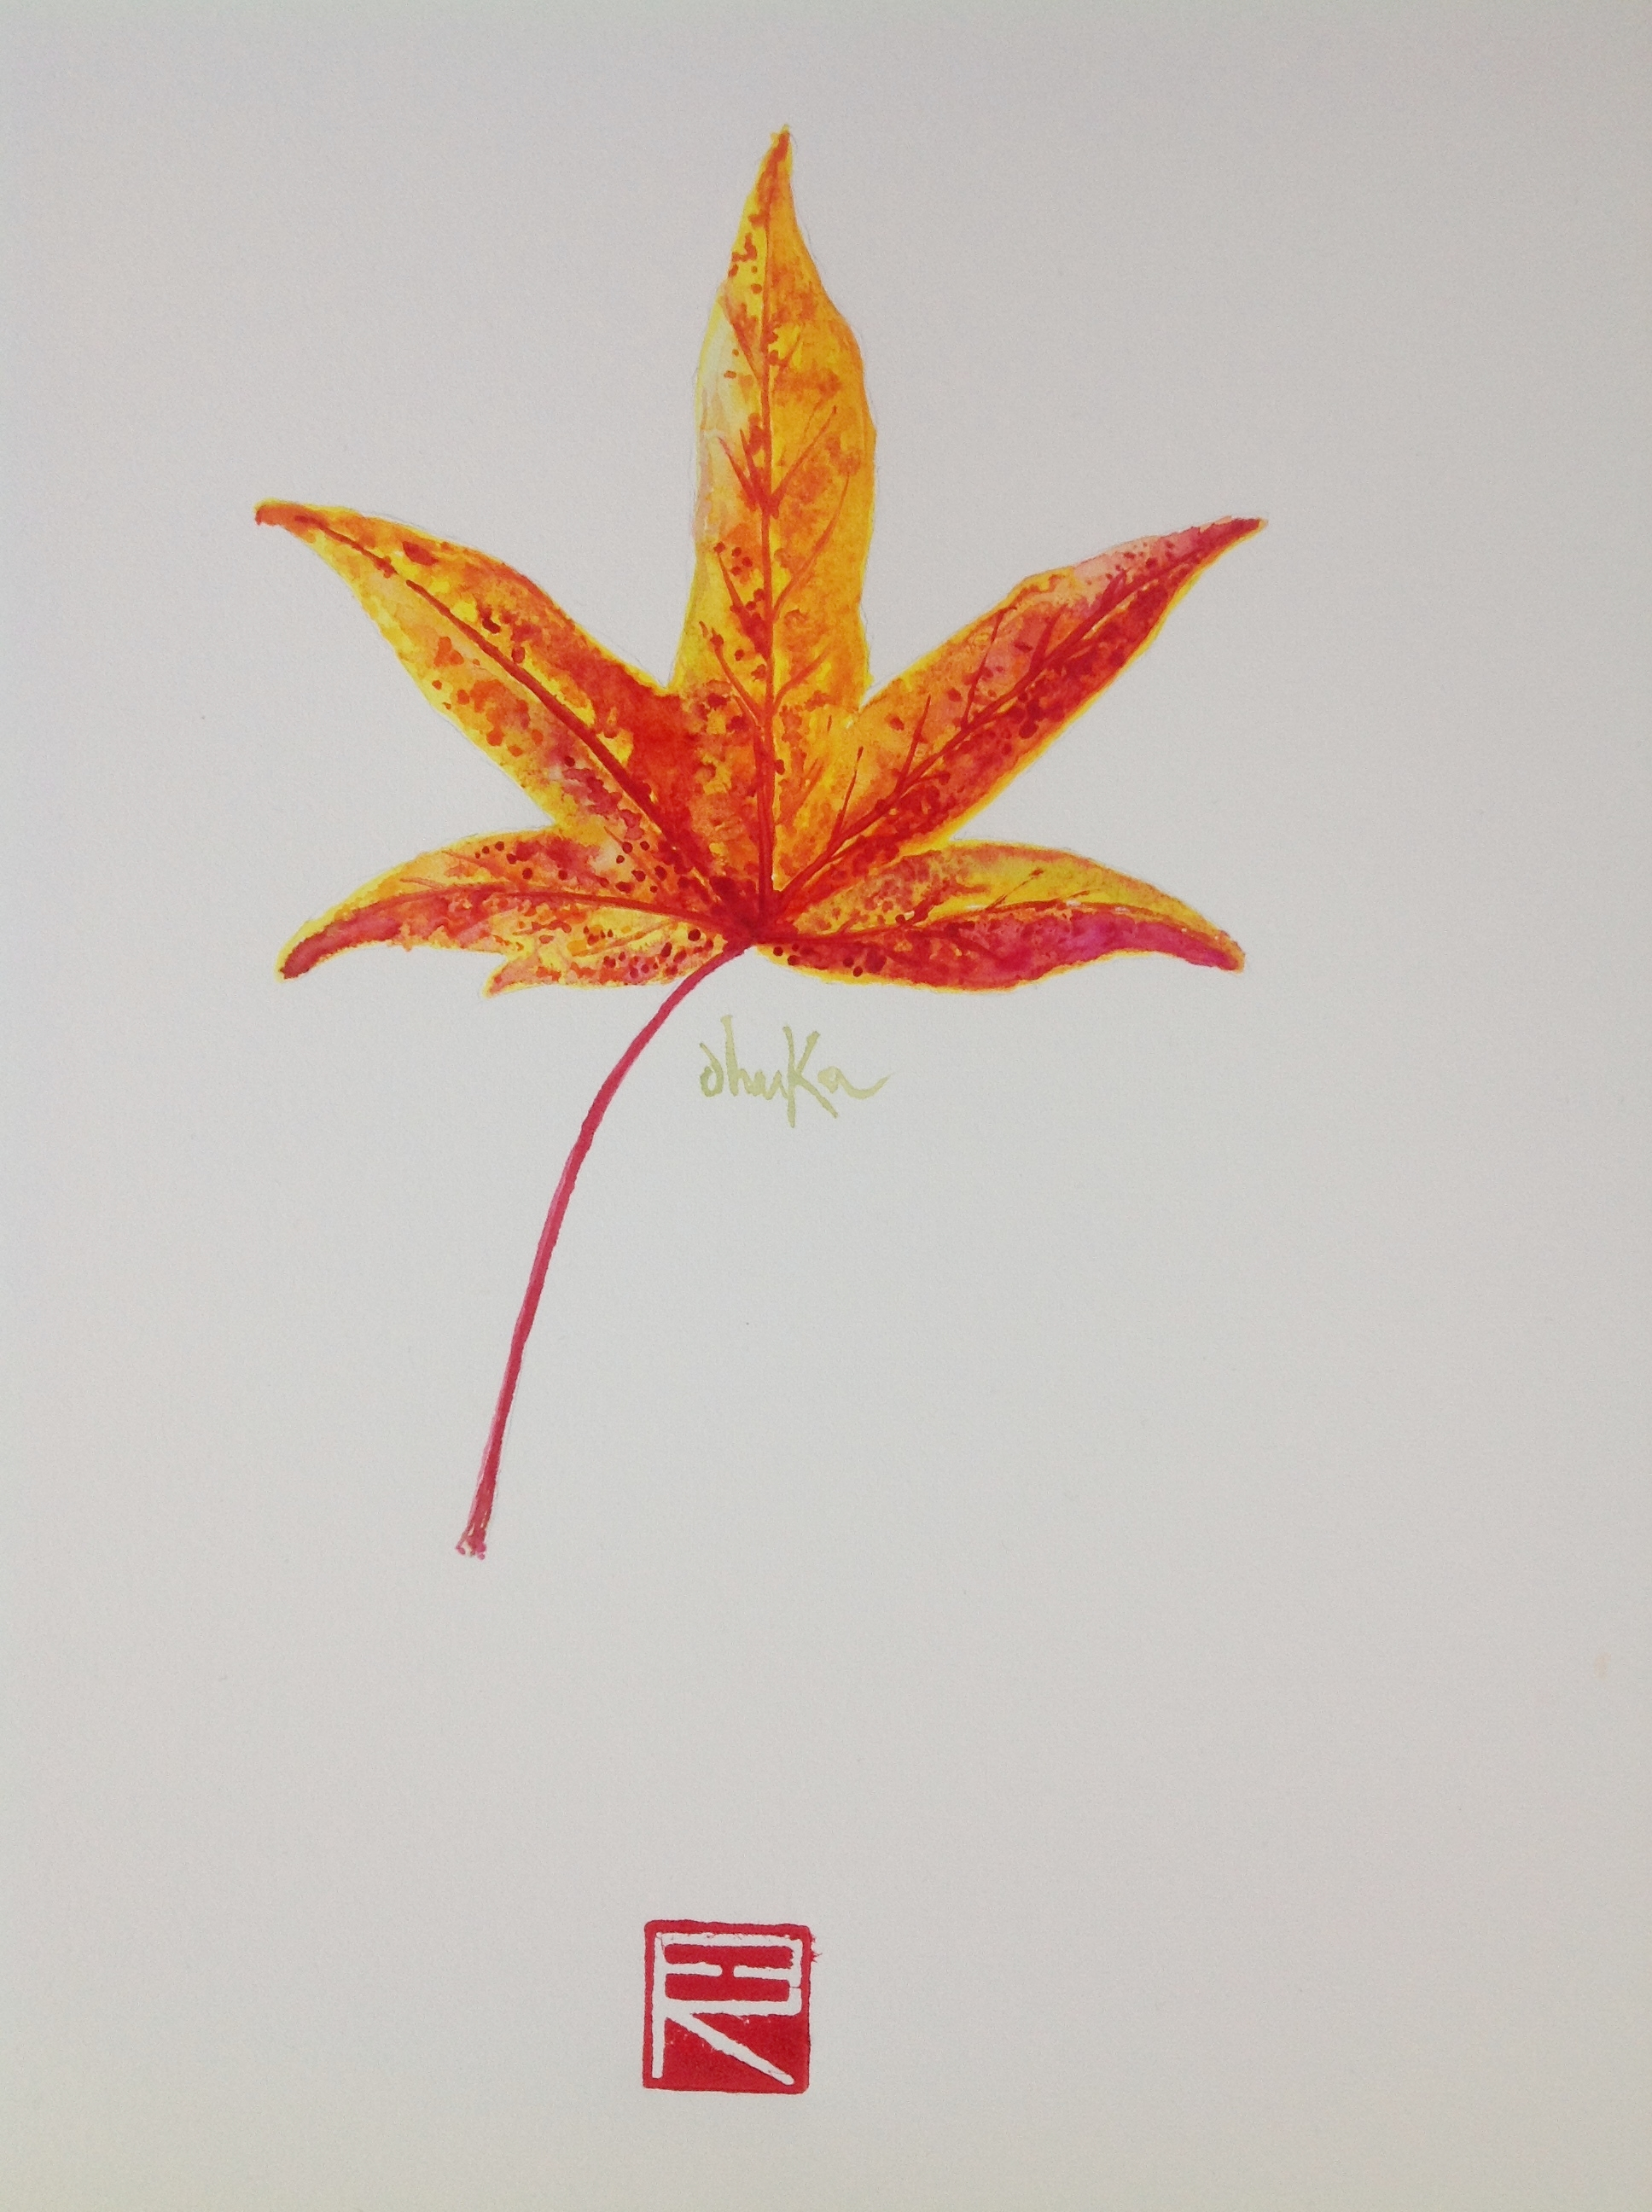 I found this leaf on the sidewalk and tried to reproduce it with watercolor.